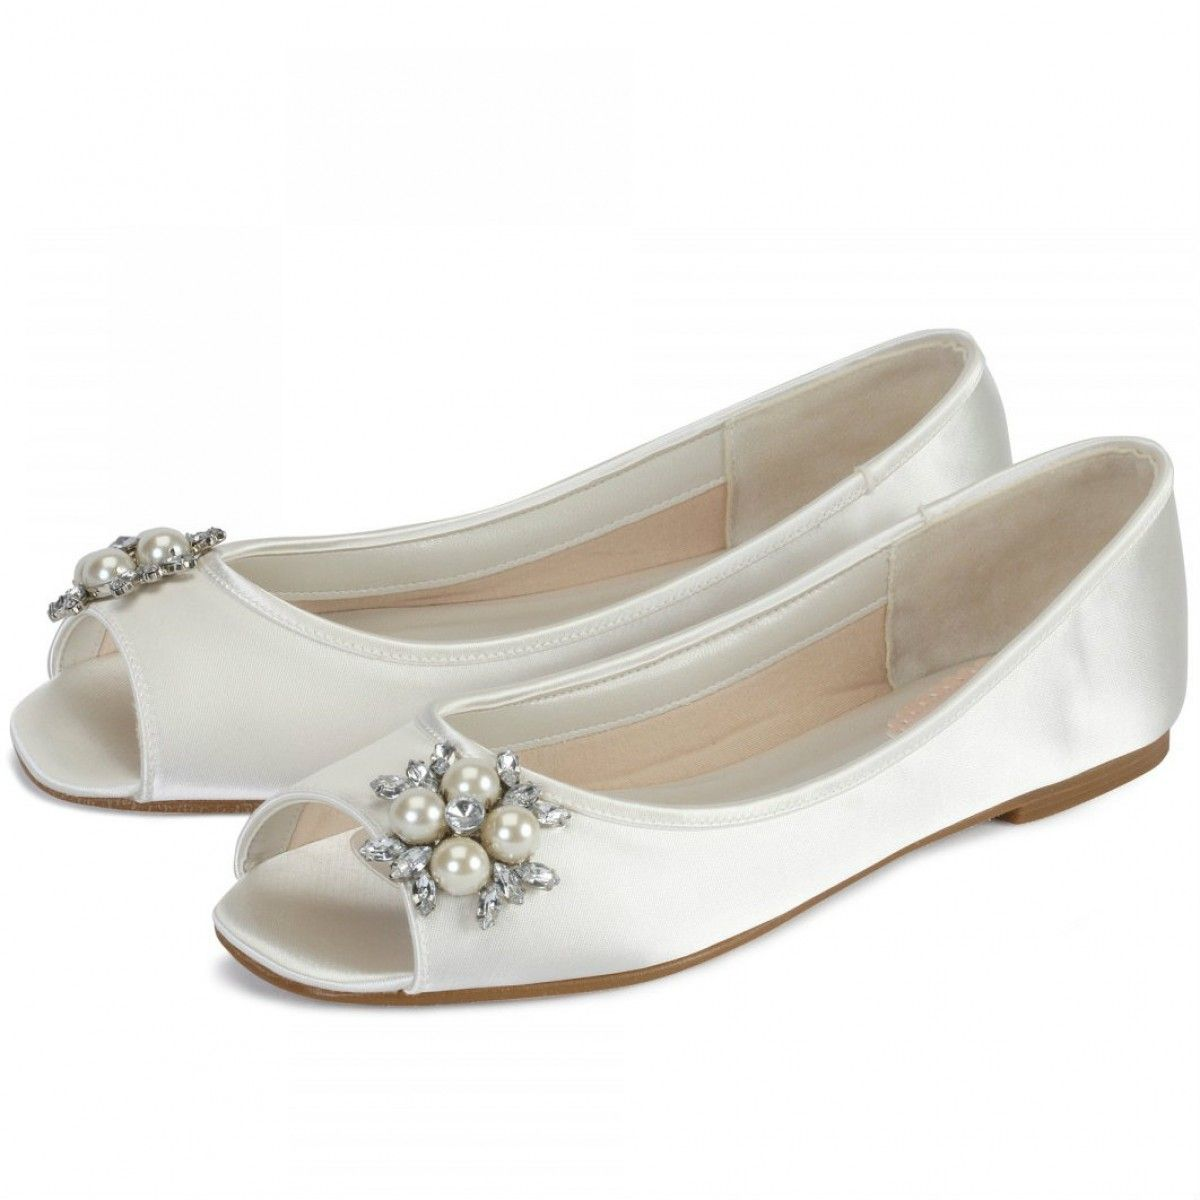 Flower By Pink For Paradox London Ivory Dyeable Flat Wedding Or Occasion Shoes Flats Shoe Heel Height